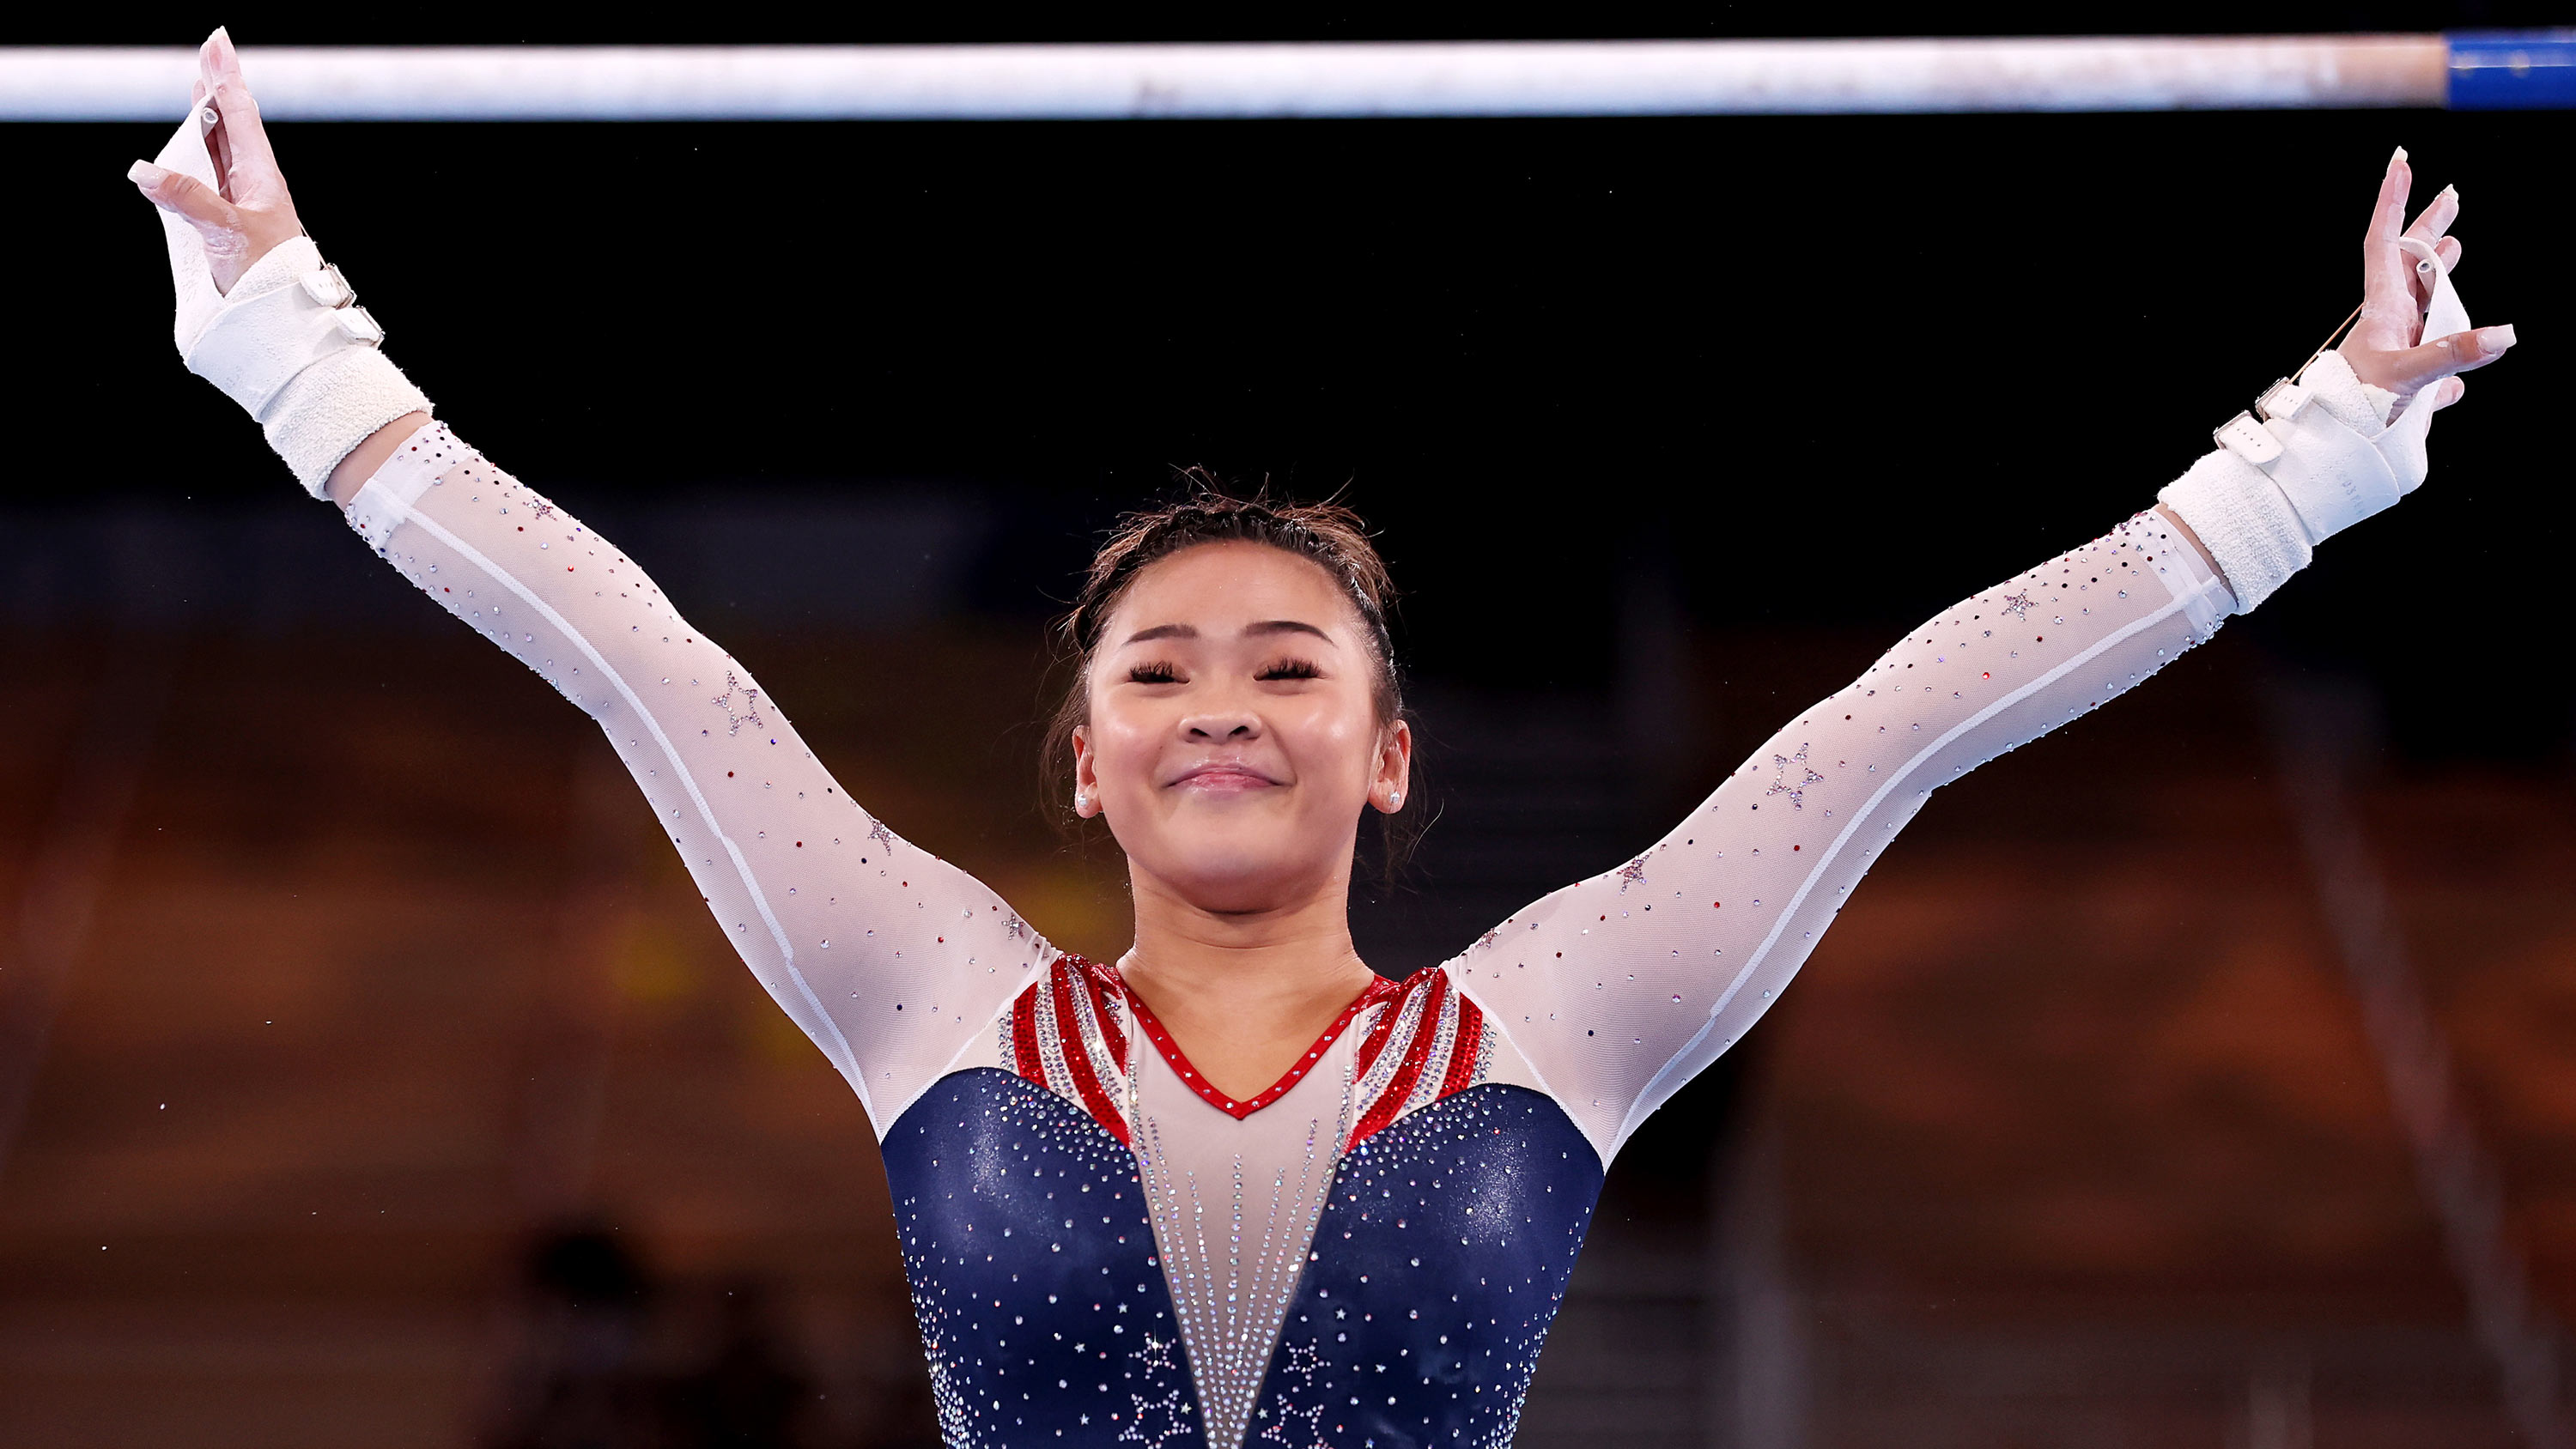 TOKYO, JAPAN - JULY 29: Sunisa Lee of Team United States reacts after competing on uneven bars during the Women's All-Around Final on day six of the Tokyo 2020 Olympic Games at Ariake Gymnastics Centre on July 29, 2021 in Tokyo, Japan. (Photo by